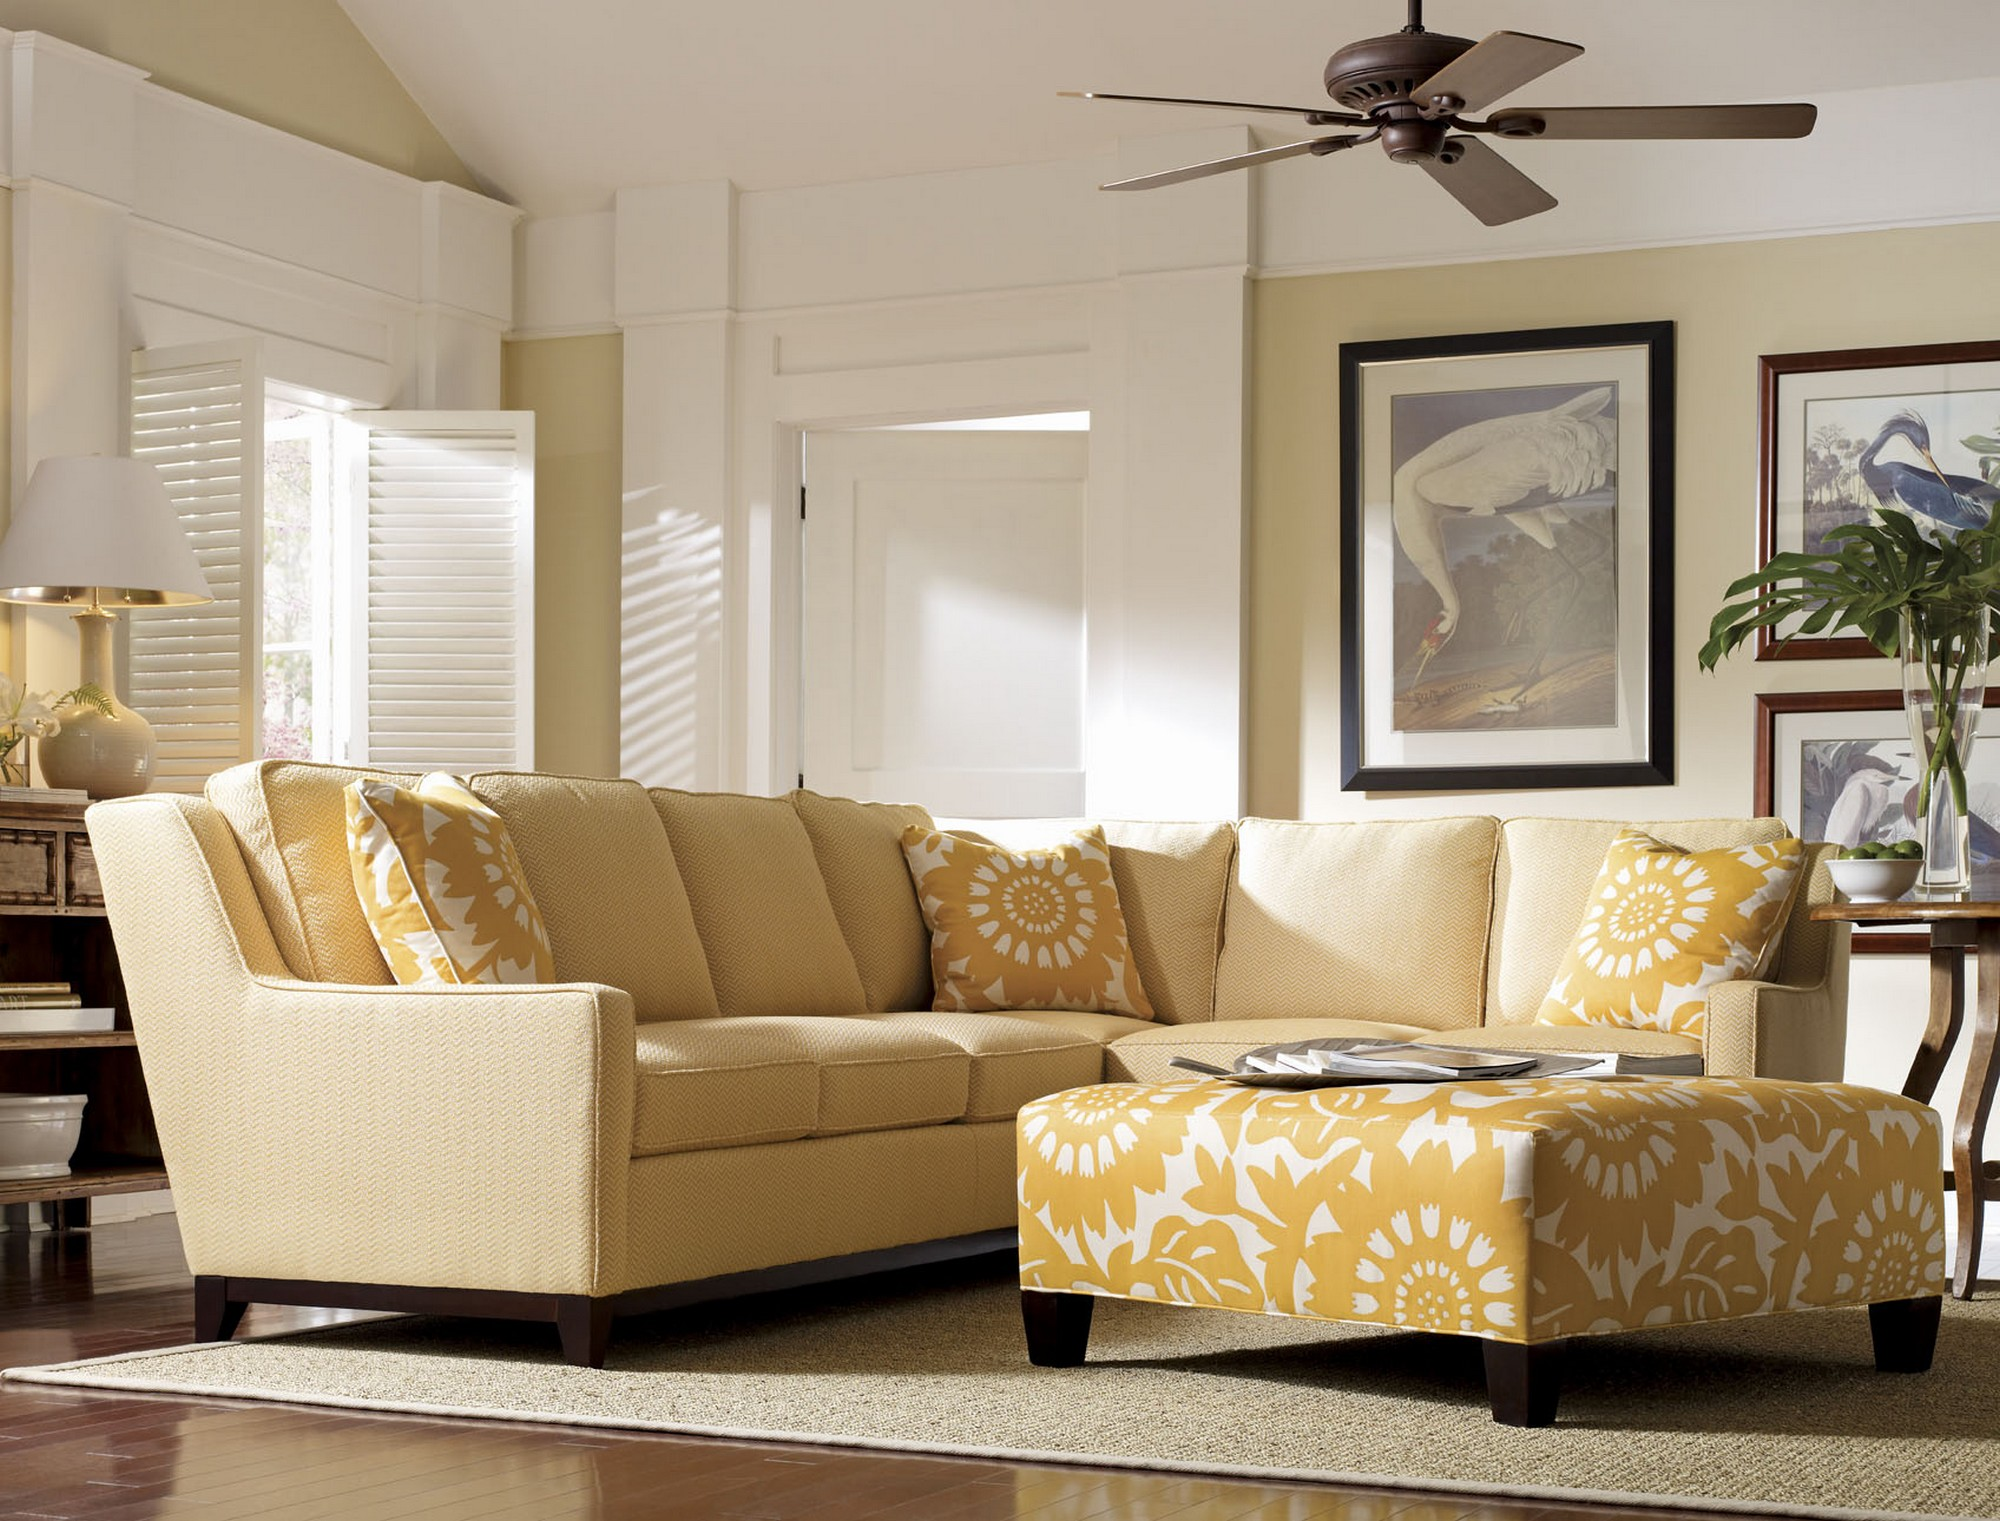 Yellow-Ottoman-Coffee-Table-For-Contemporary-Living-Room-Design-With-Ceiling-Fan (Image 6 of 8)